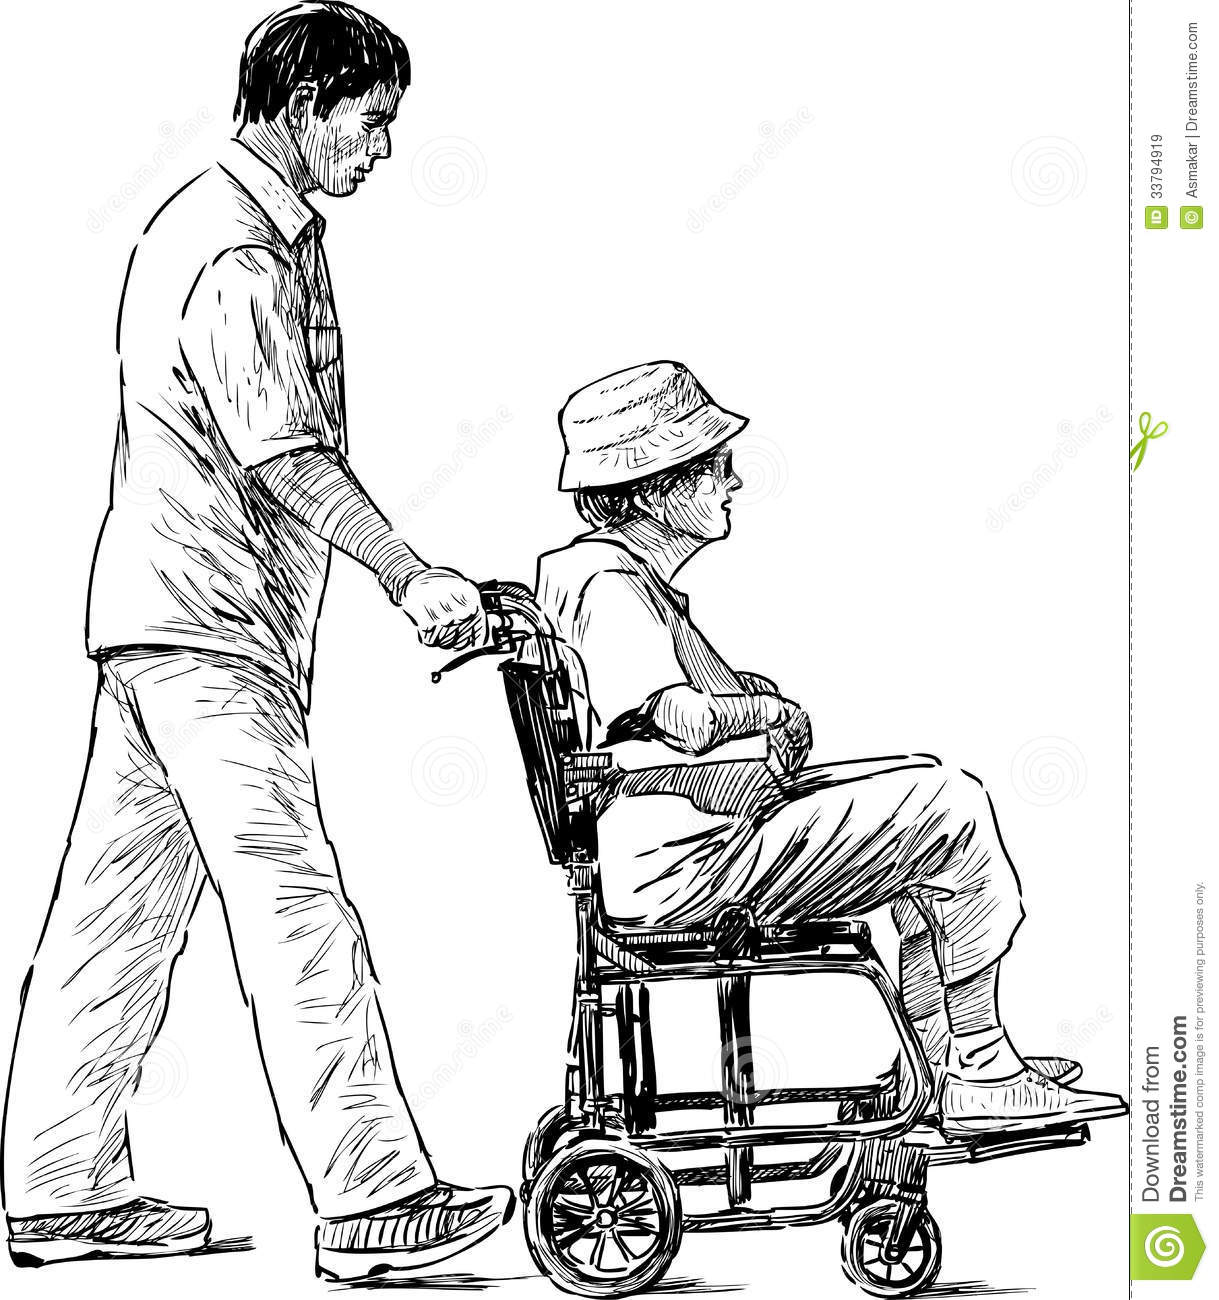 Royalty Free Stock Images Walk Vector Drawing Elderly Woman Carer Image33794919 furthermore 52101 cs phone in addition 76173 alphabetline further How To Draw A Cartoon Forest as well . on hill drawing